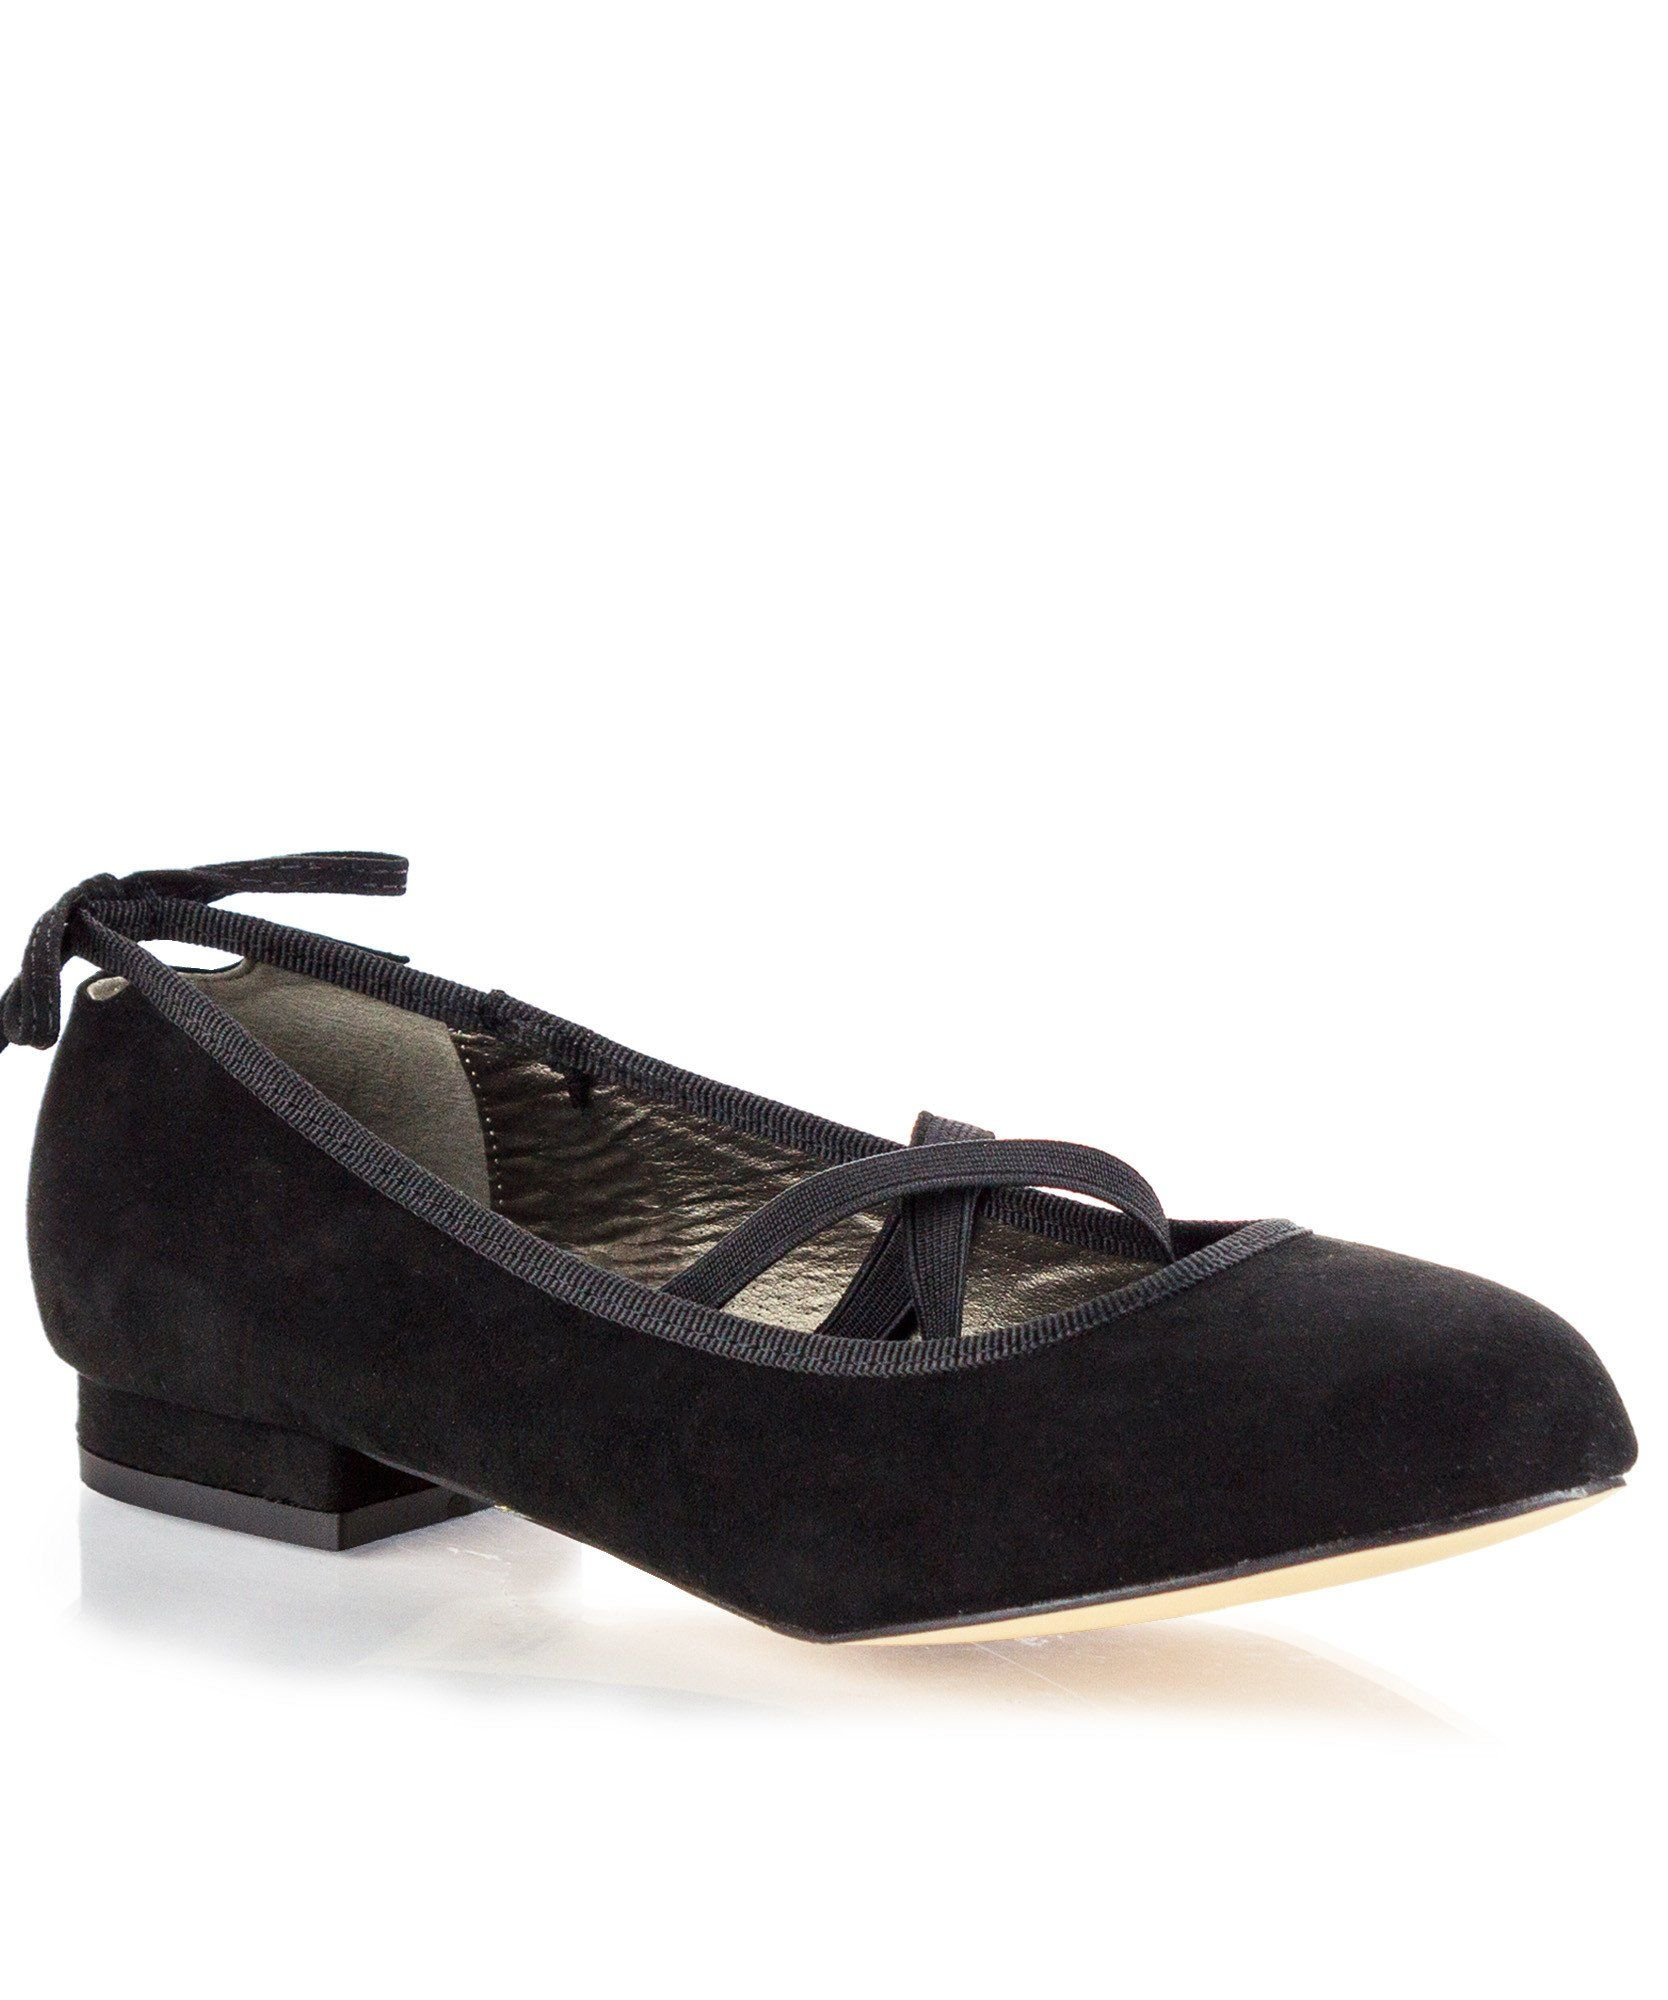 8a5646763 ROF Anna-21 Criss Cross Mary Jane Back Bow Decor Ballet Flats in Black Suede